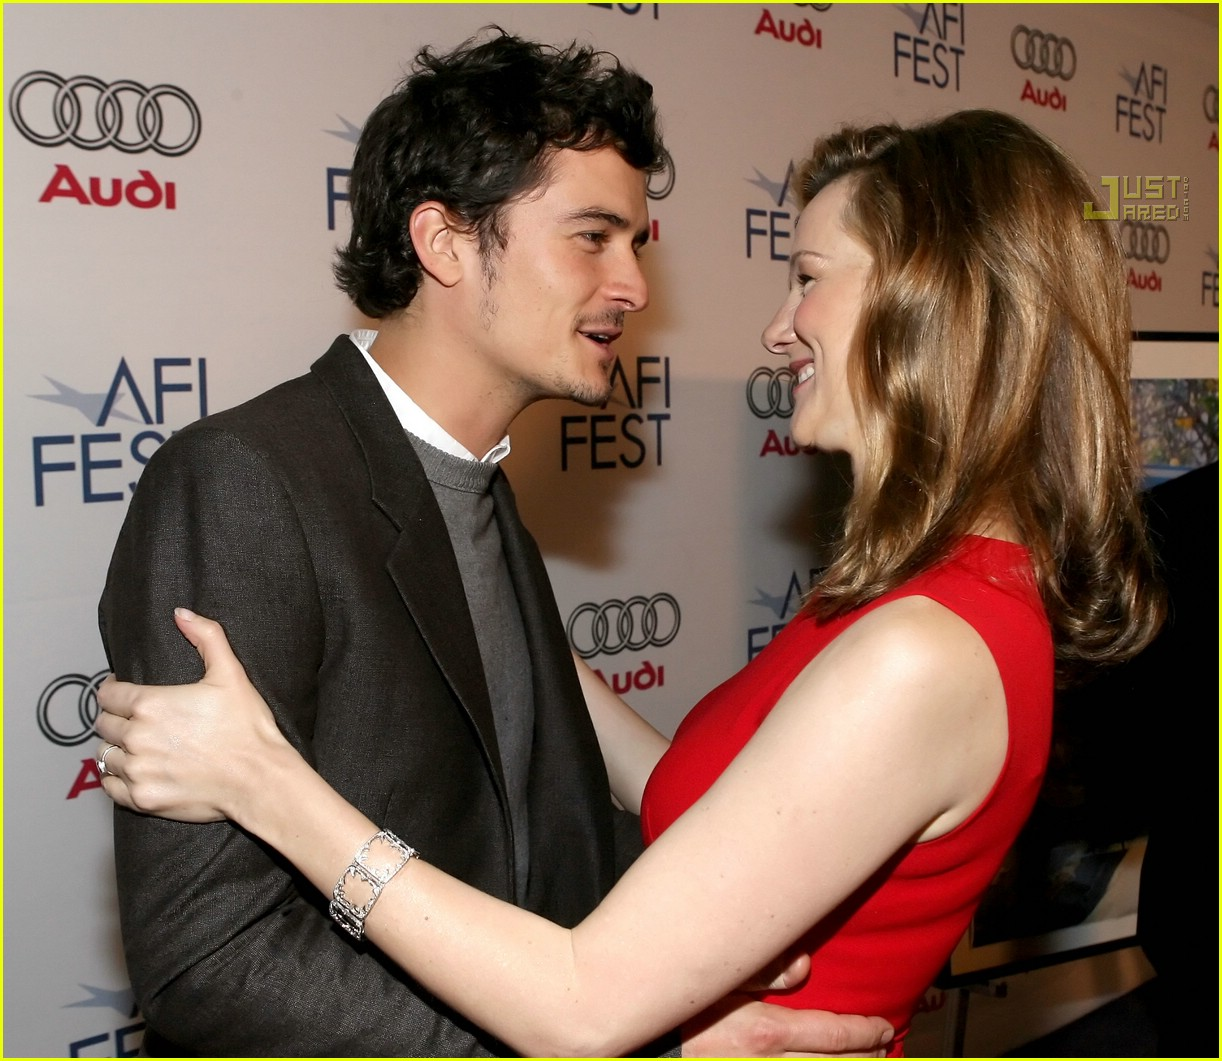 orlando bloom afi fest 2007 18721231